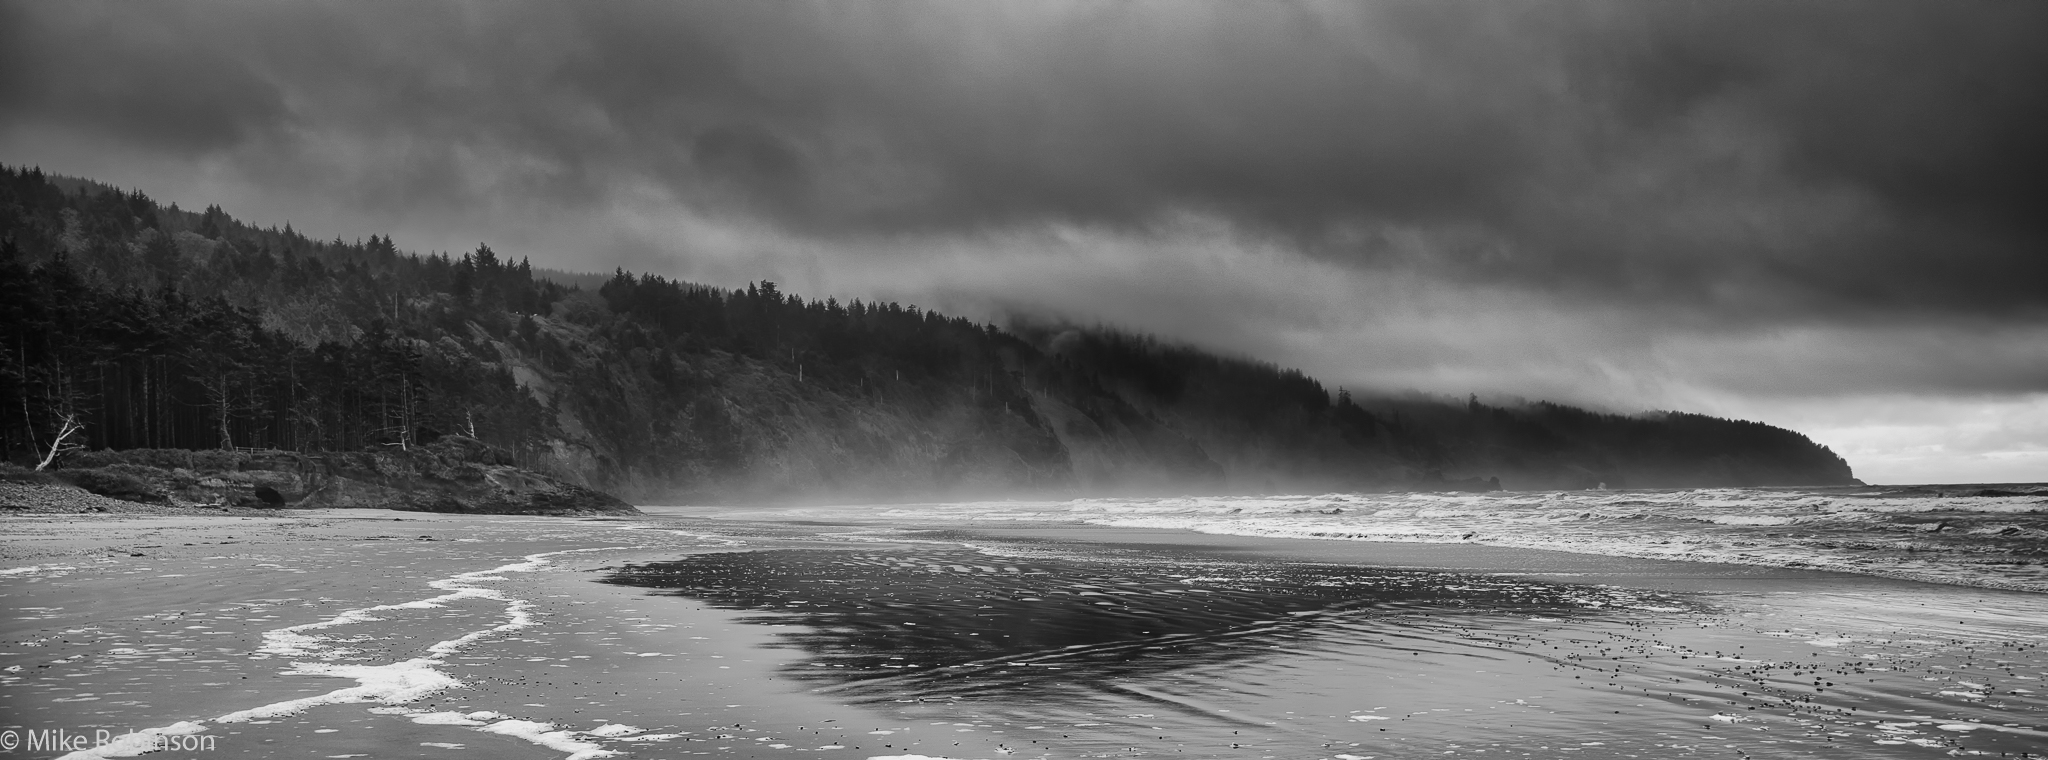 Oregon_Coast_Rainy_Spring_Morning_2_BW